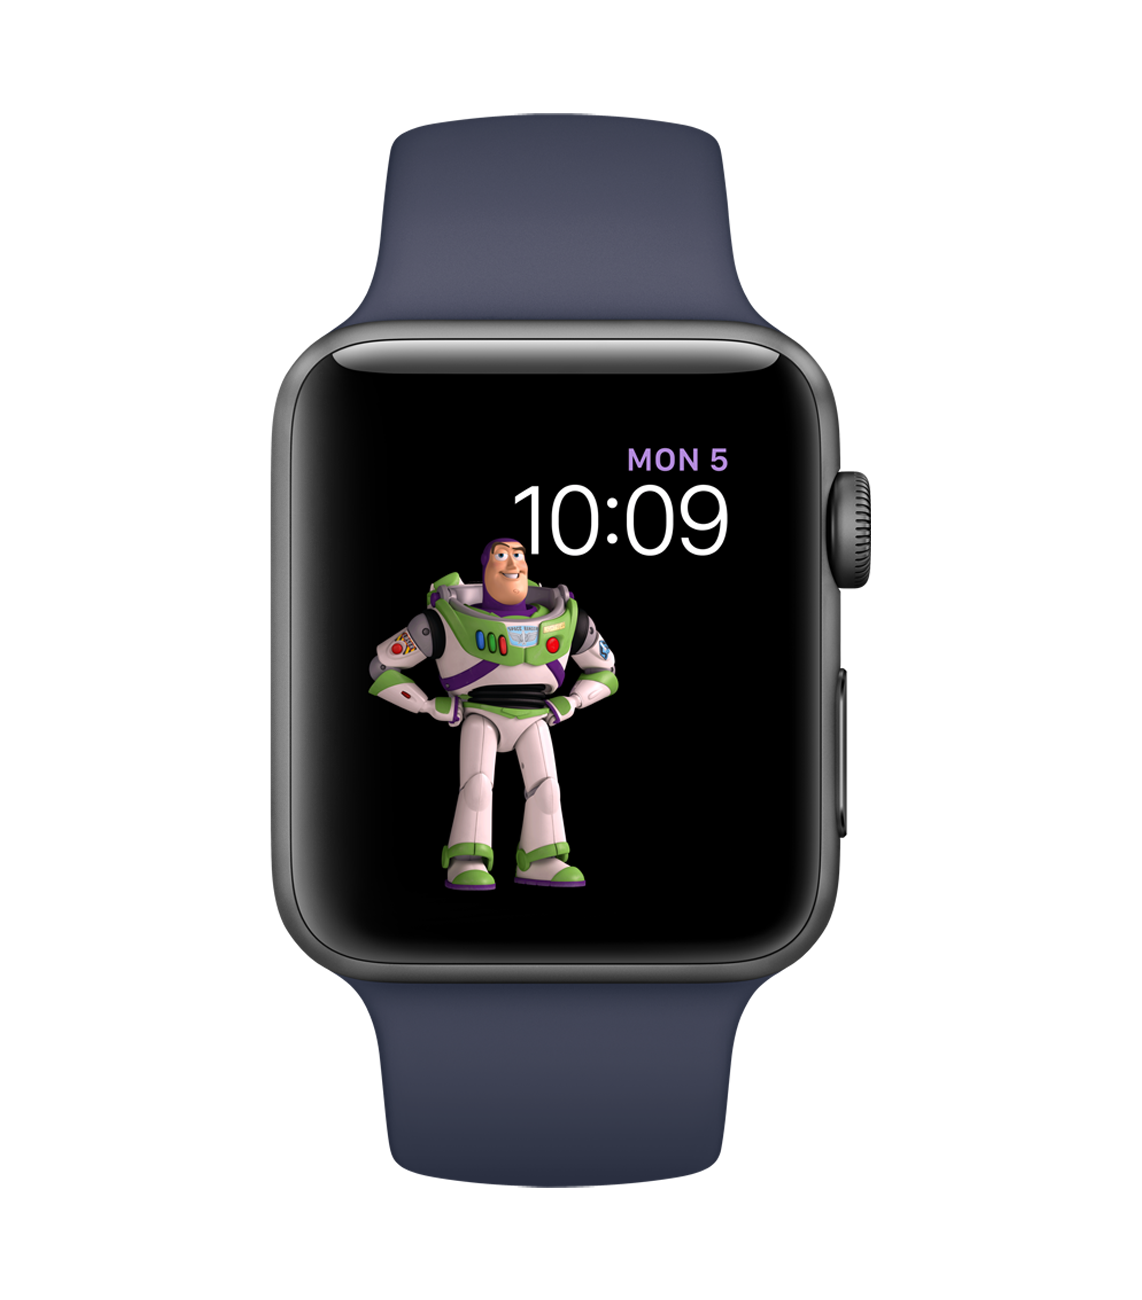 Buzz Lightyear Watch Face